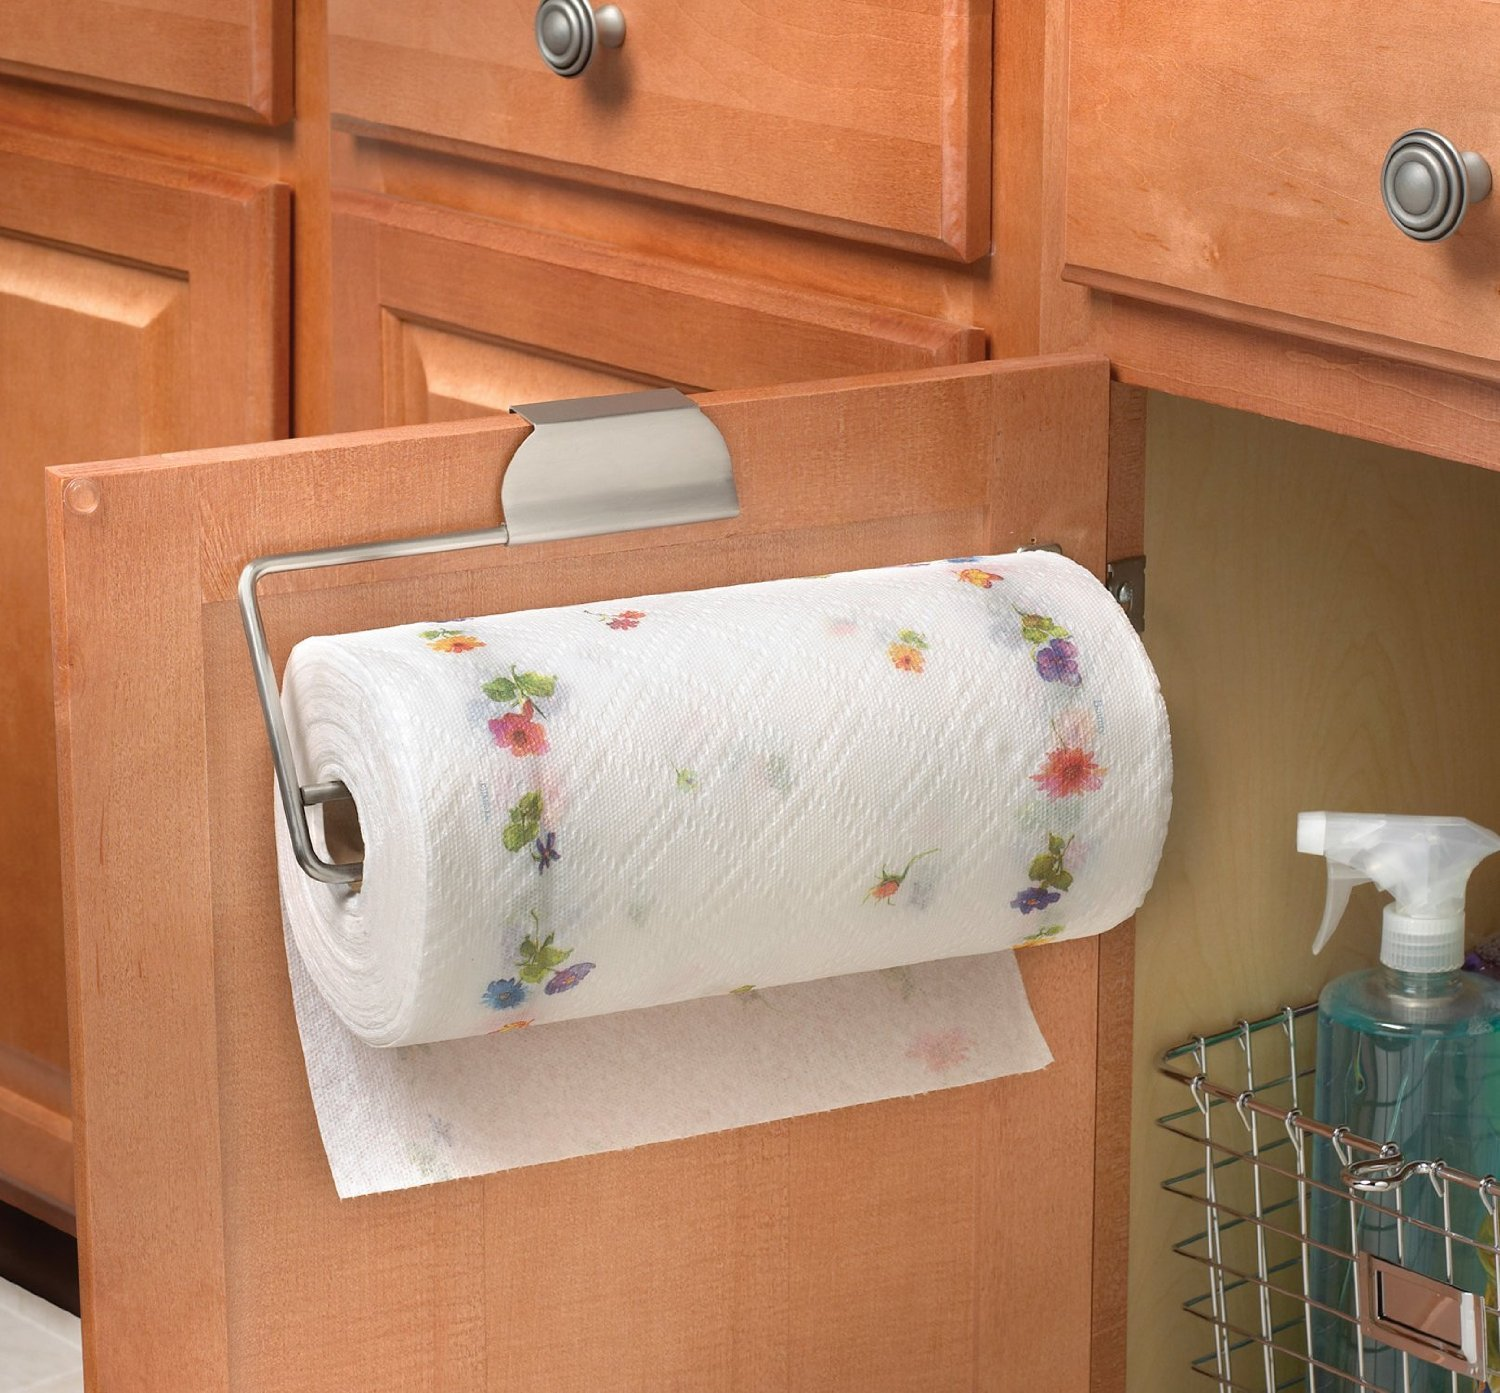 paper towel dispenser for home bathroom. Amazon.com: Spectrum Diversified Over The Drawer, Cabinet Paper Towel Holder, Brushed Nickel: Home \u0026 Kitchen Dispenser For Bathroom 0